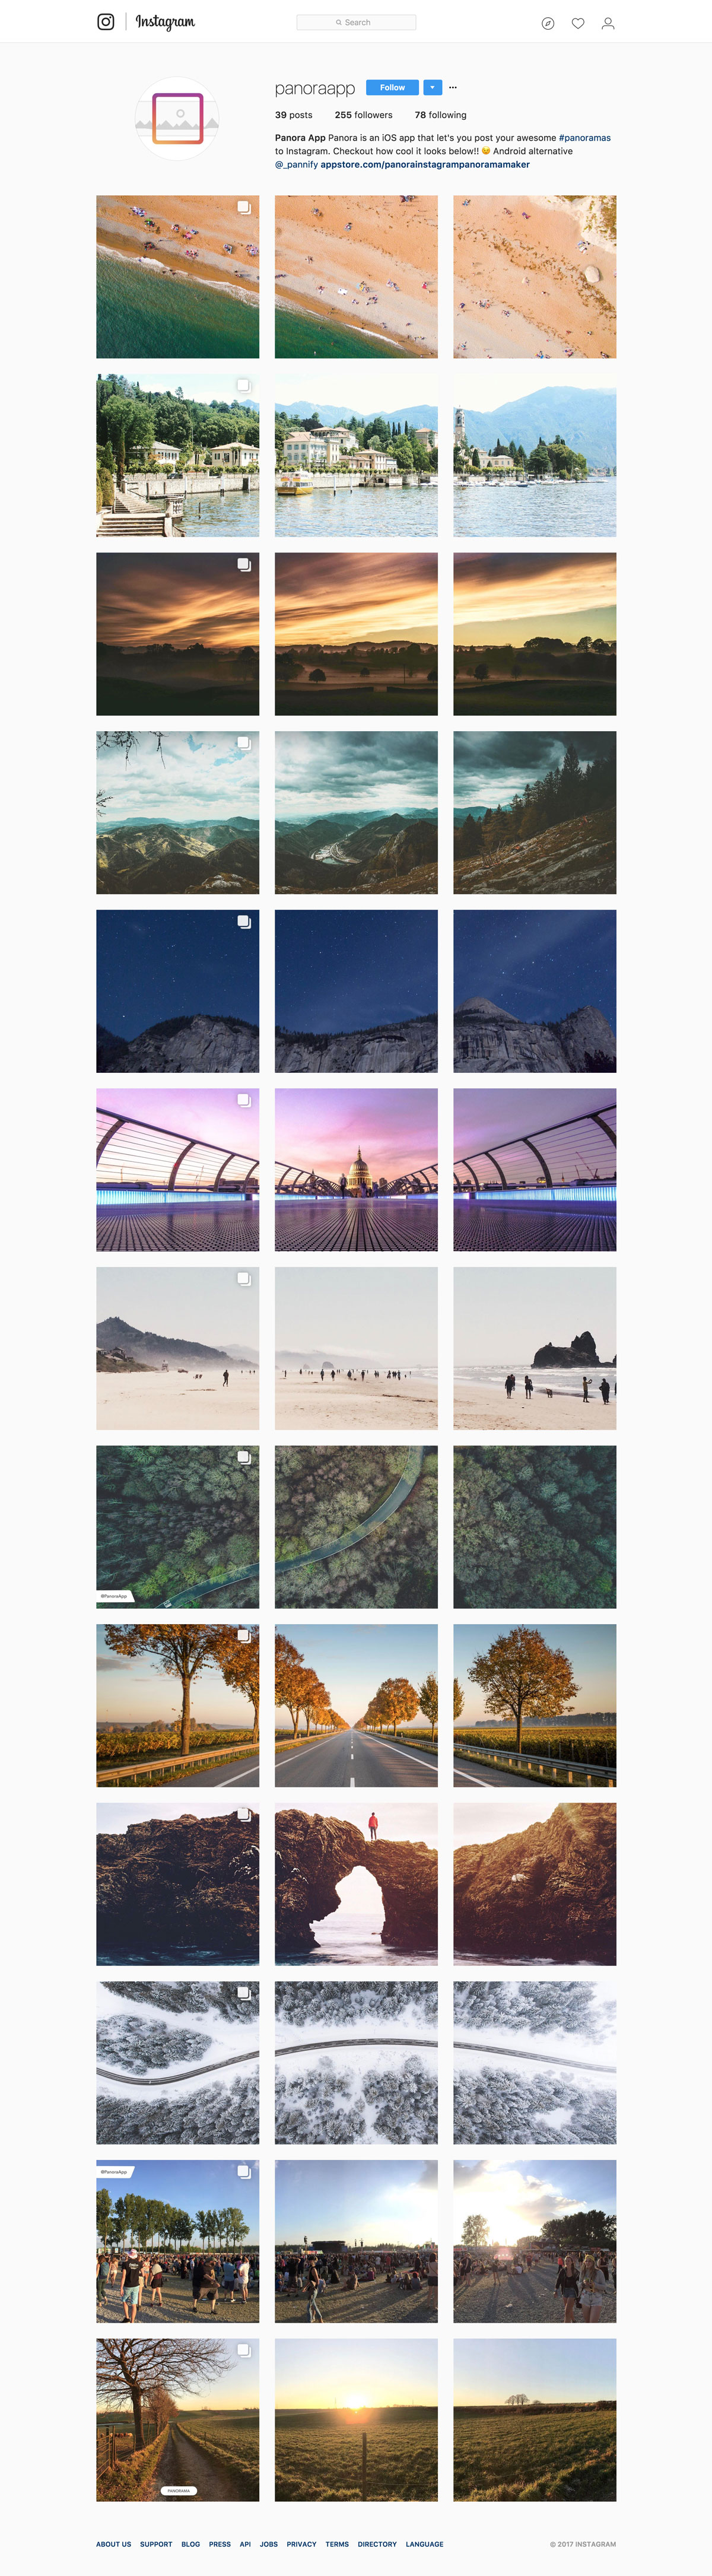 publish panoramas to instagram with panora